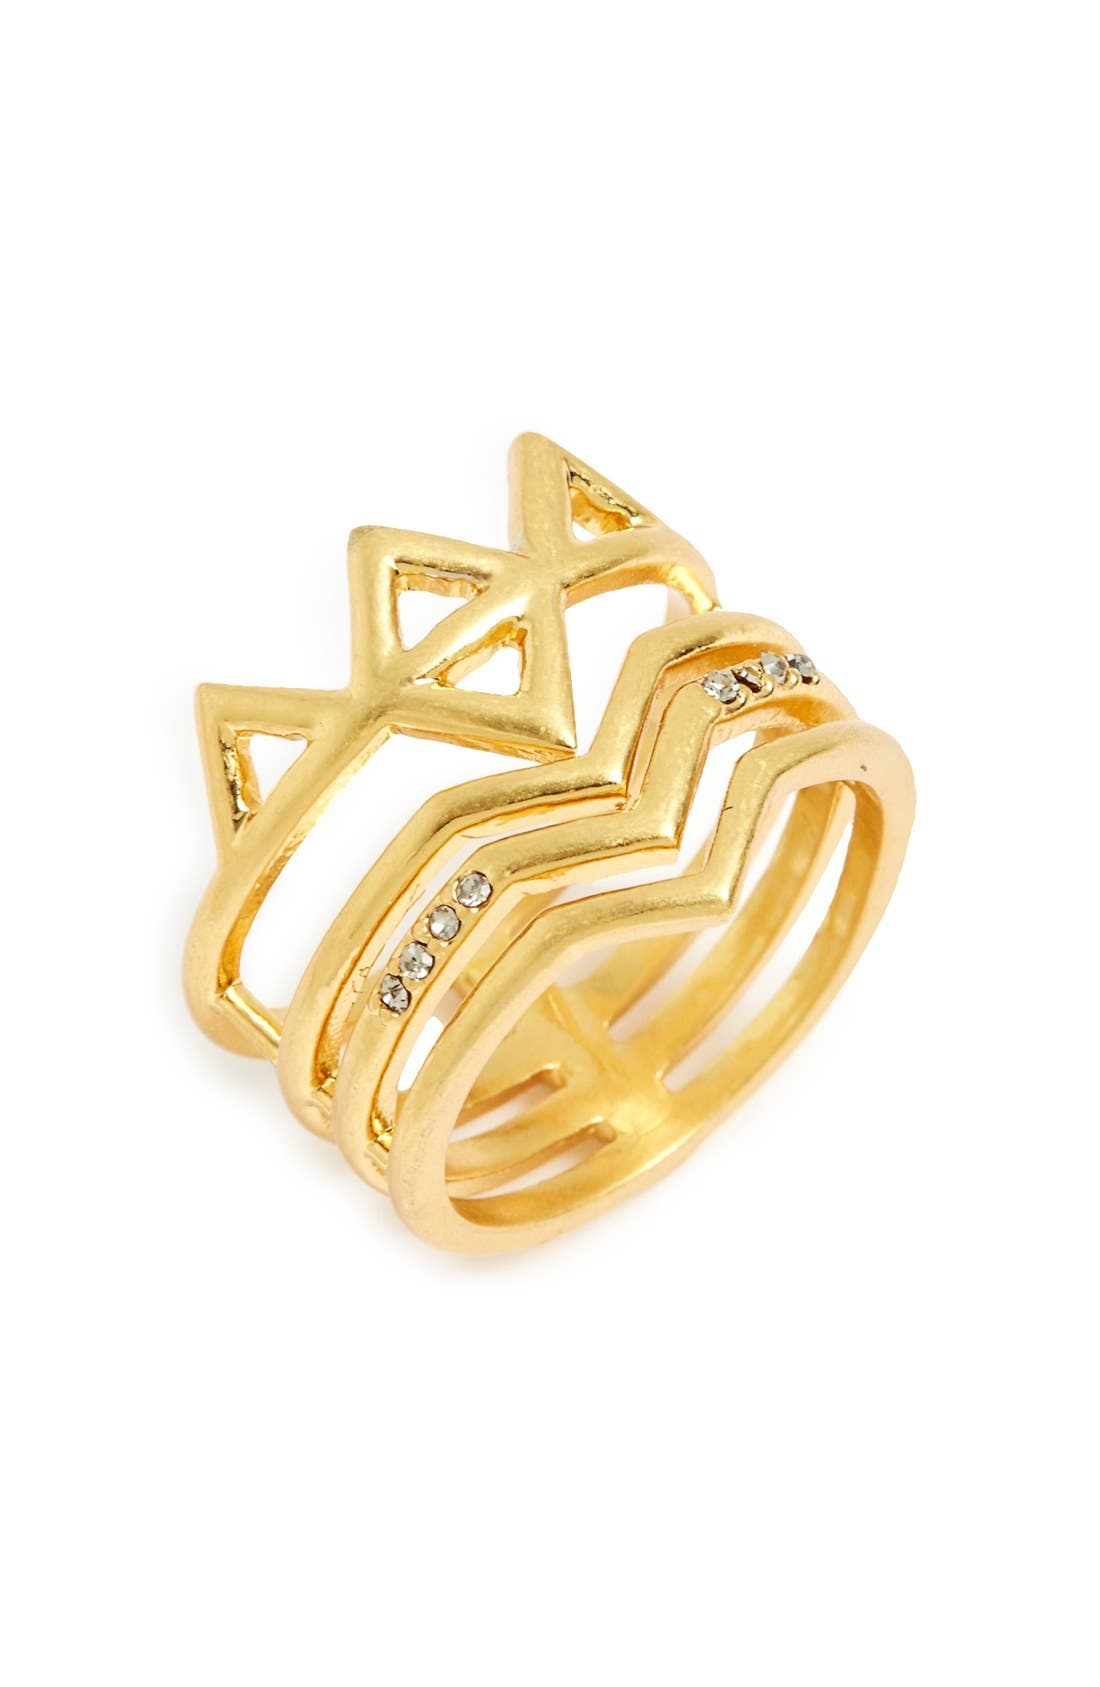 Alternate Image 1 Selected - Madewell 'Crownstack' Ring